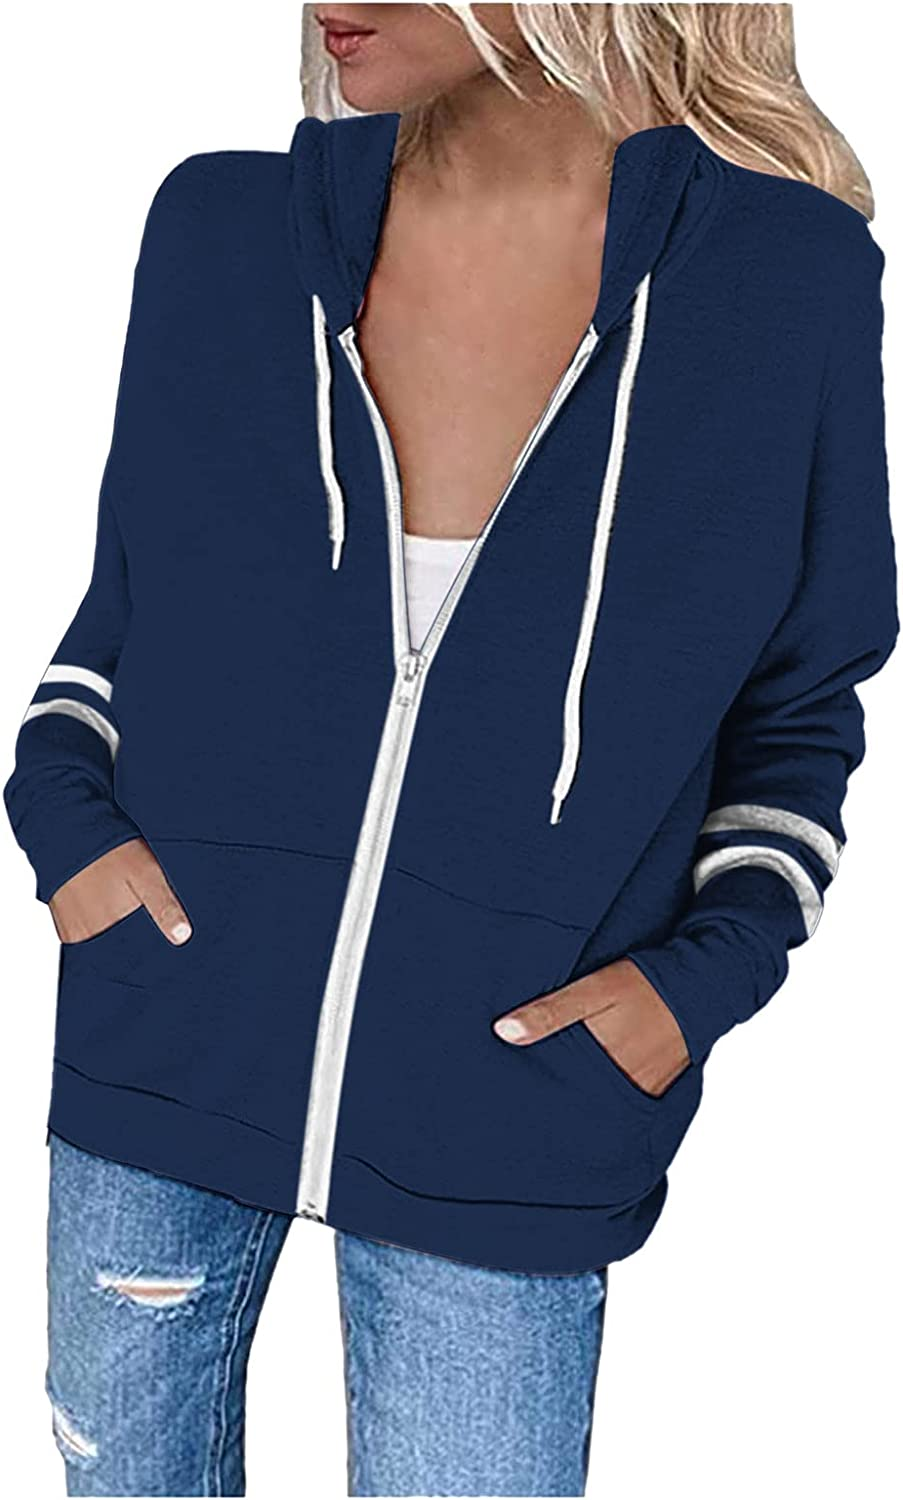 Jackets Max 51% OFF for Teens Girls Trendy Zip Some reservation Up Hoodies Swetshirts Color B